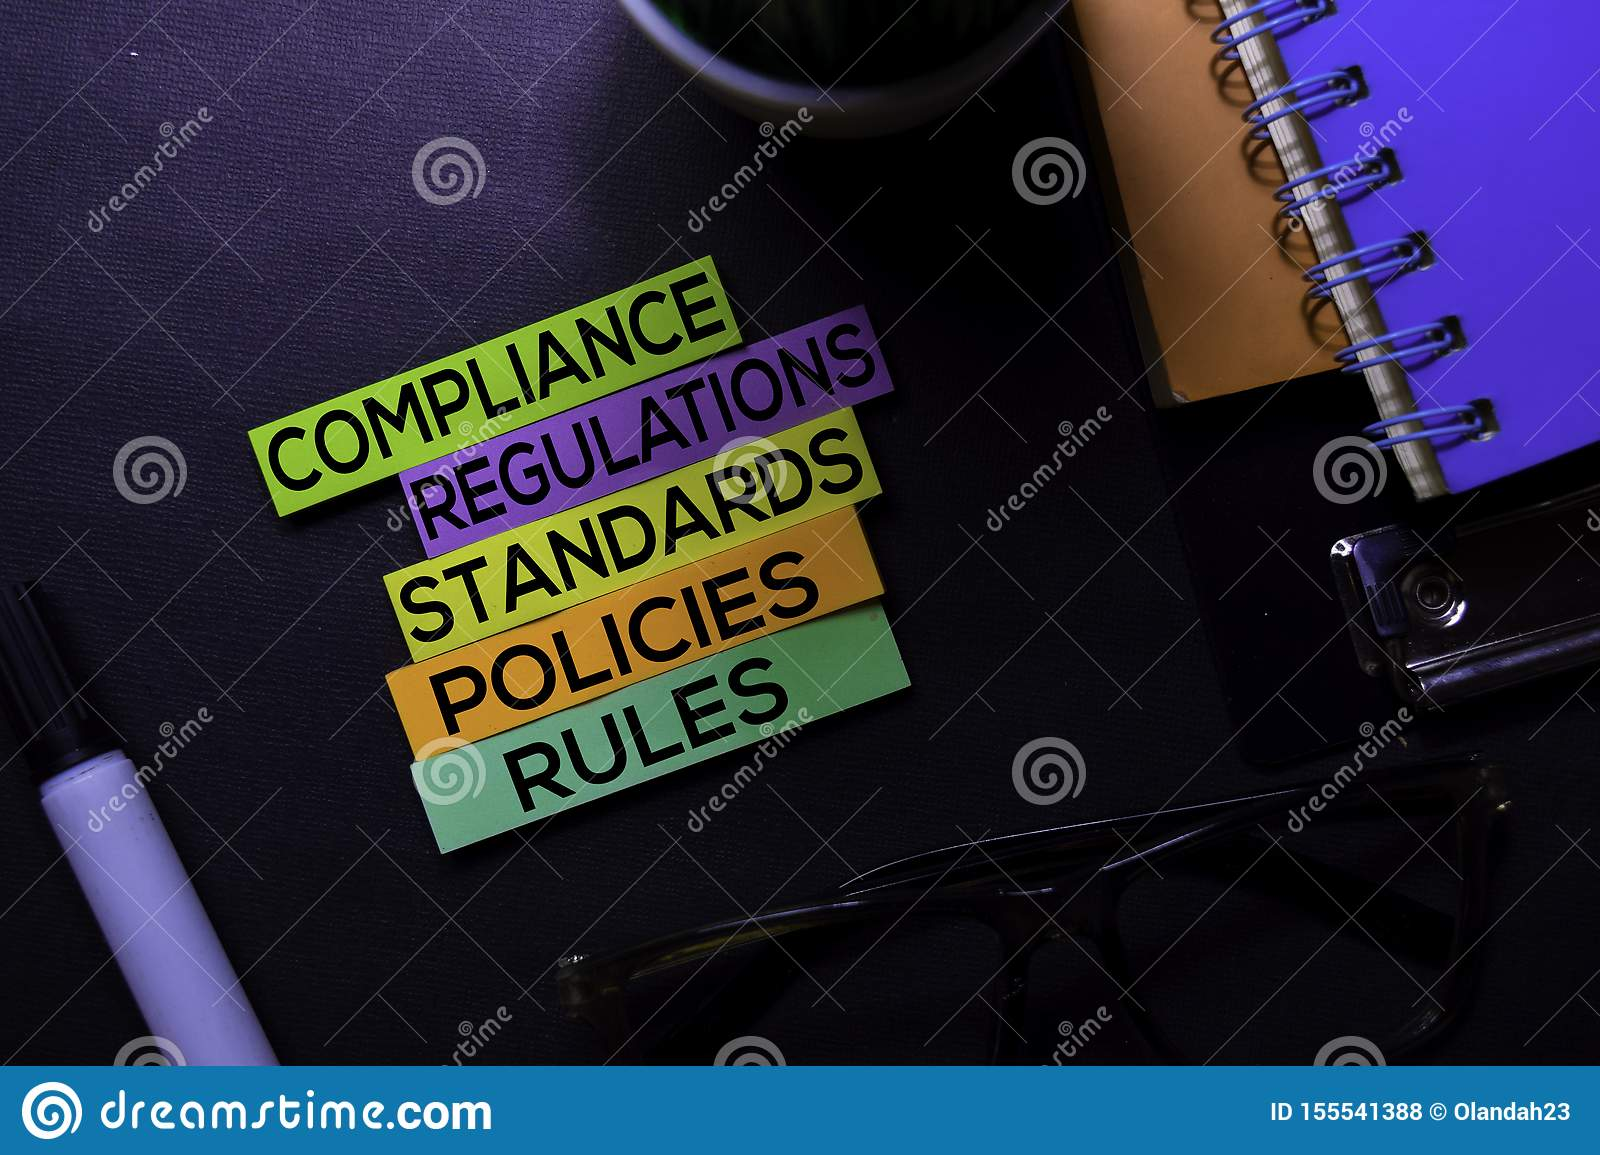 Compliance, Regulations, Strandards, Policies, Rules text on sticky notes isolated on Black desk. Mechanism Strategy Concept